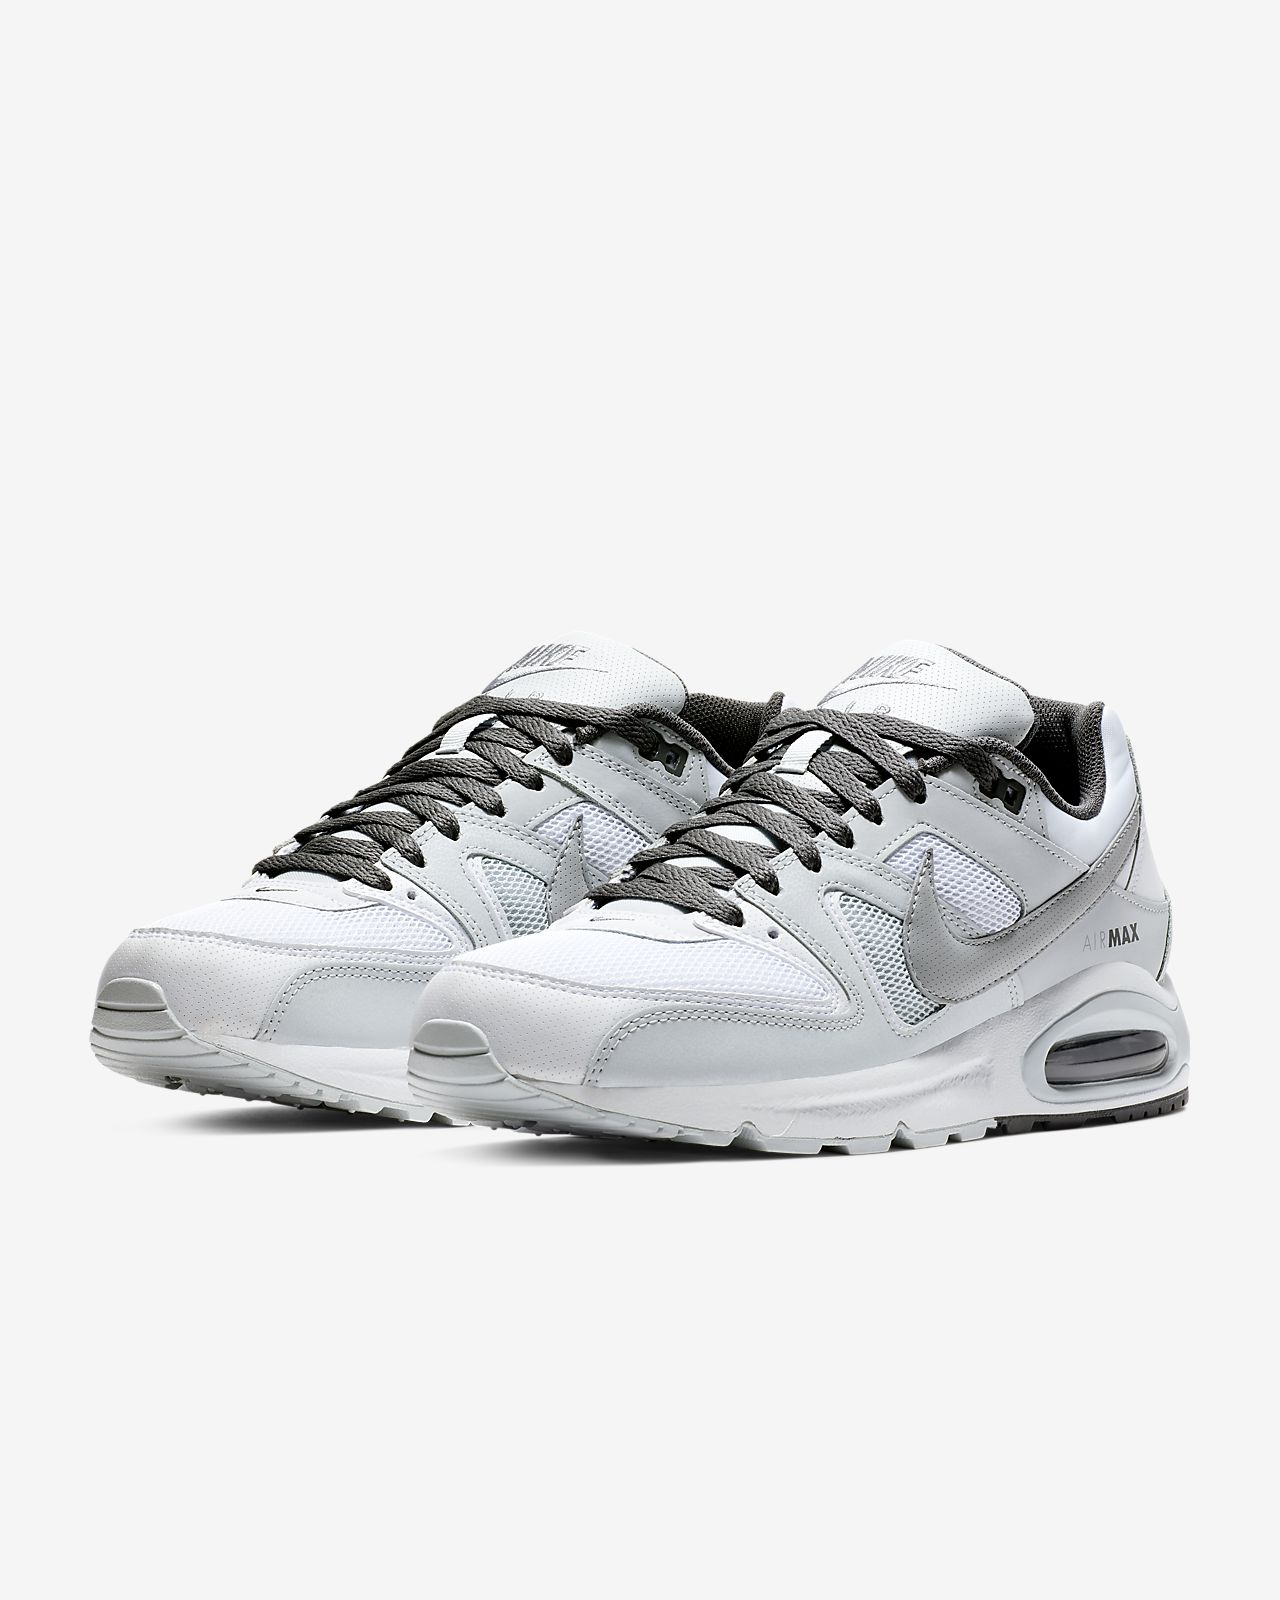 the latest 7f88b efd75 ... Nike Air Max Command Men s Shoe